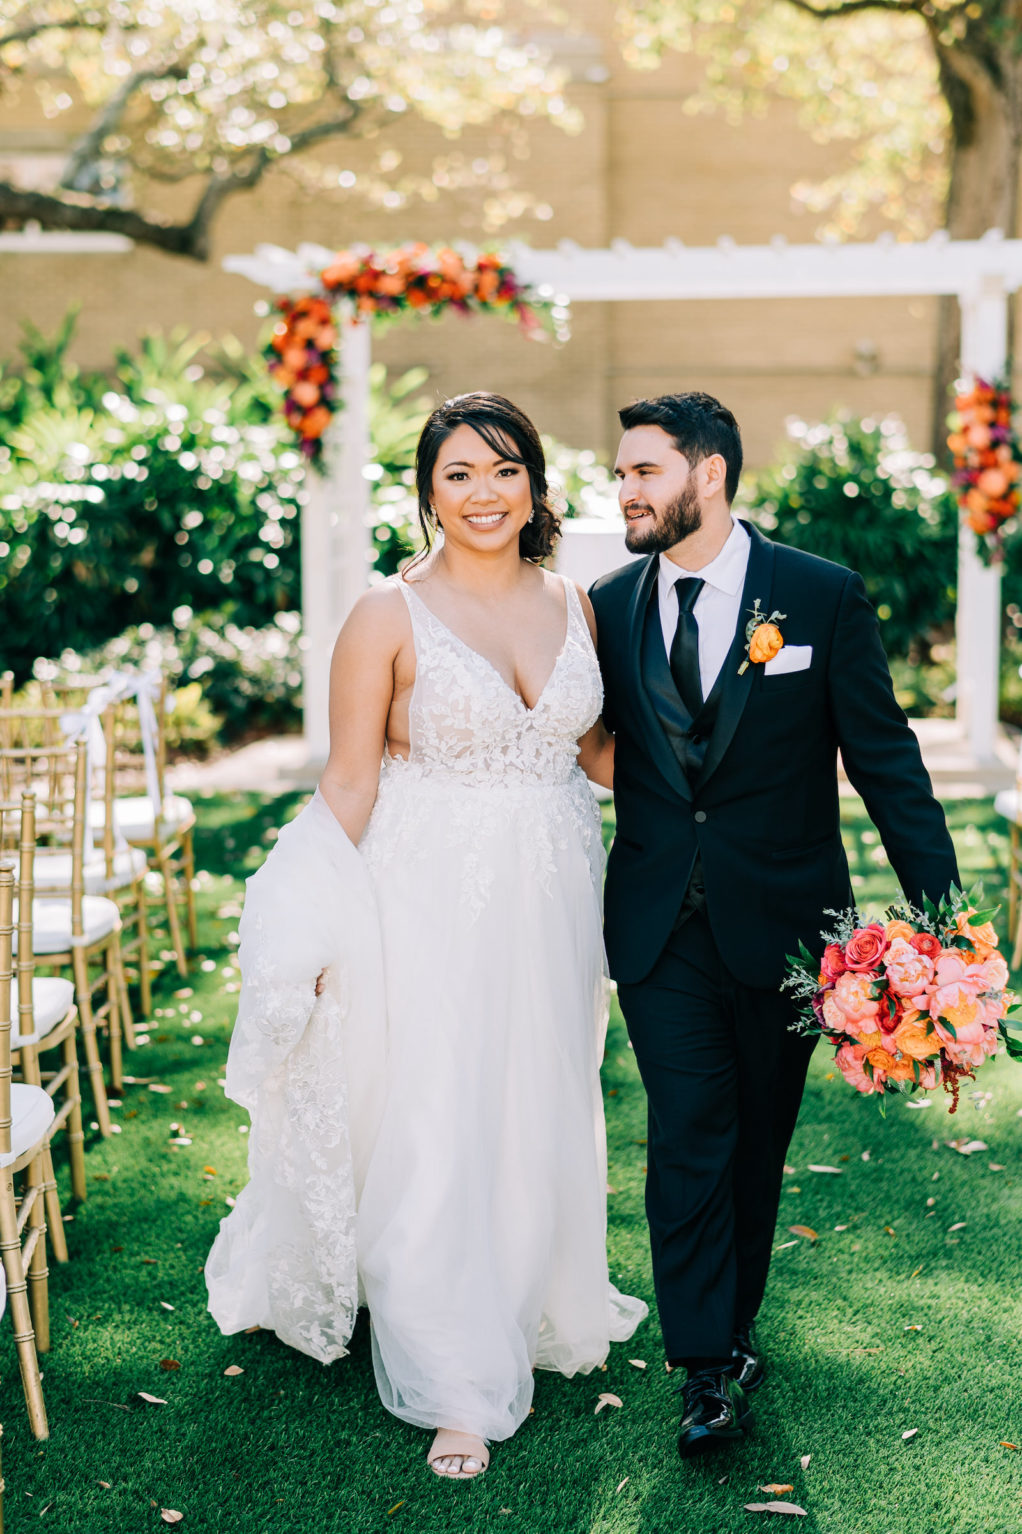 Classic Outdoor Garden Ceremony, Bride and Groom Holding Vibrant Colorful Pink, Orange and Red Bridal Floral Bouquet Walking Together Down the Aisle   Tampa Bay Wedding Florist Monarch Events and Design   Wedding Venue Tampa Garden Club